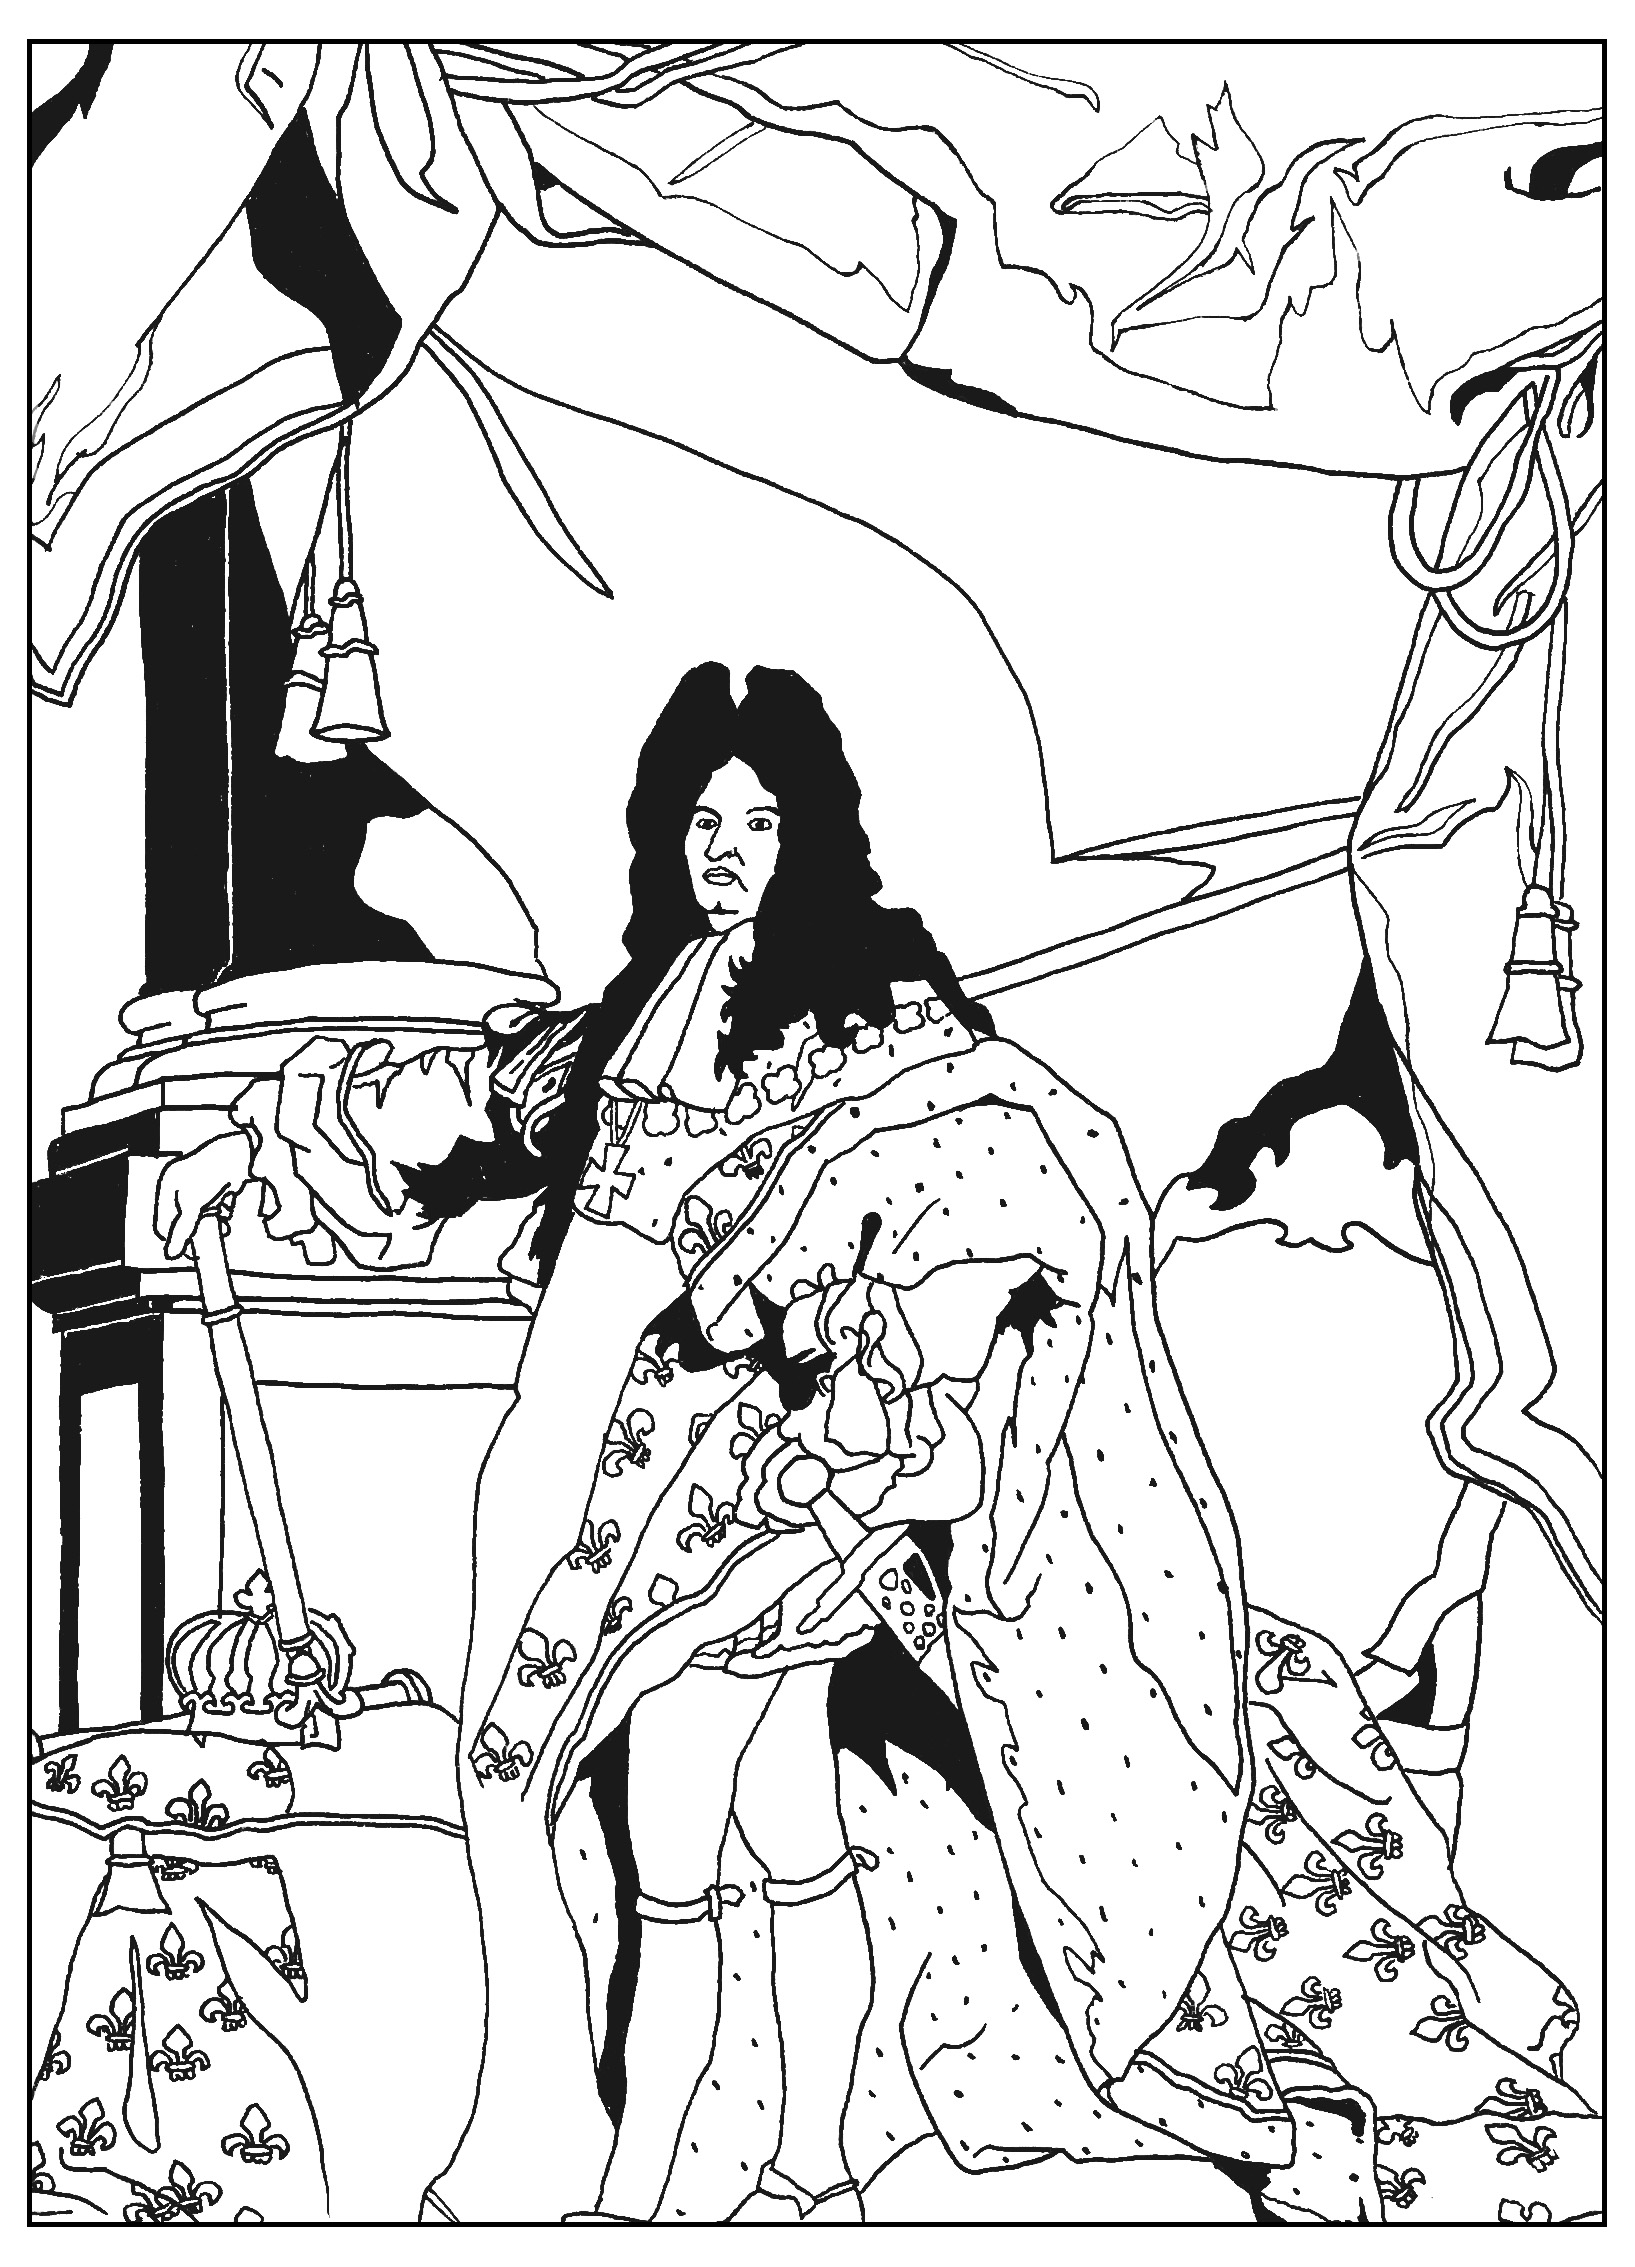 Coloring page representing the famous French King Louis XIV, with many details